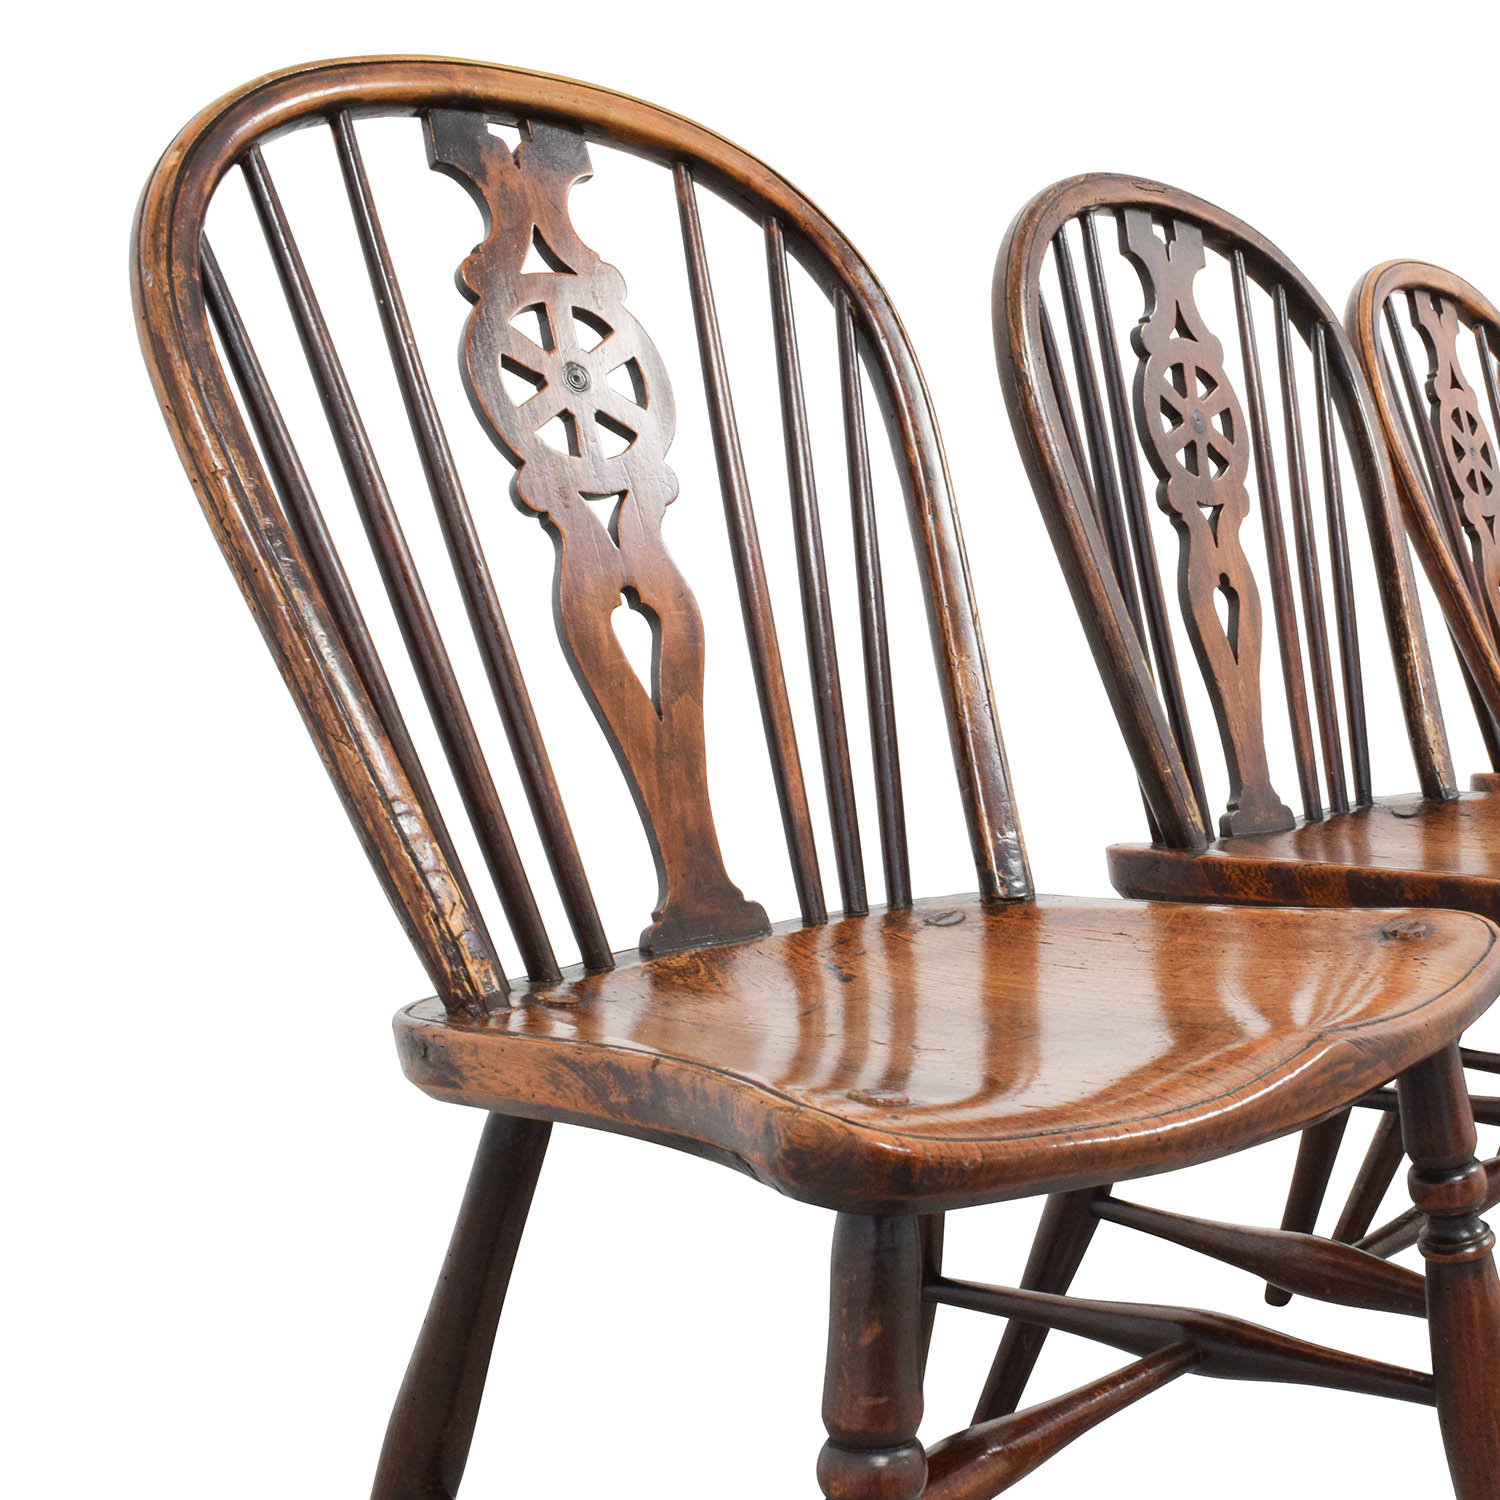 antique windsor chairs for sale outdoor garden chair covers furniture